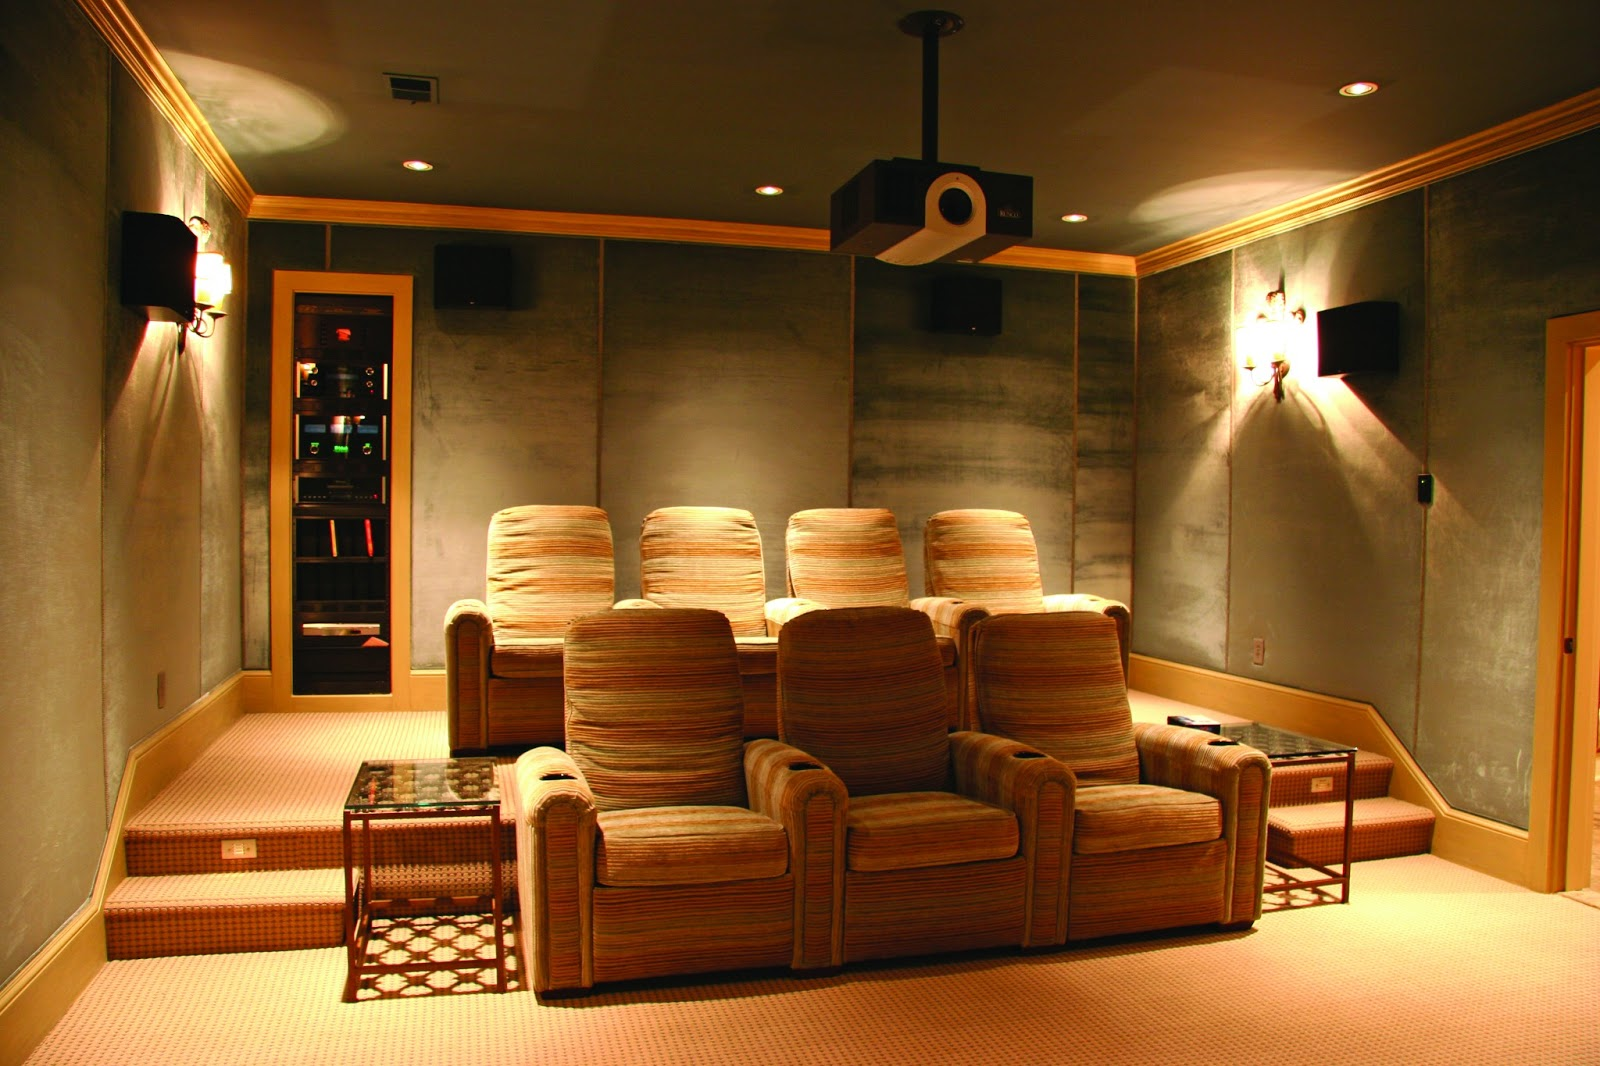 The home care the home theatre effect Home theatre room design ideas in india